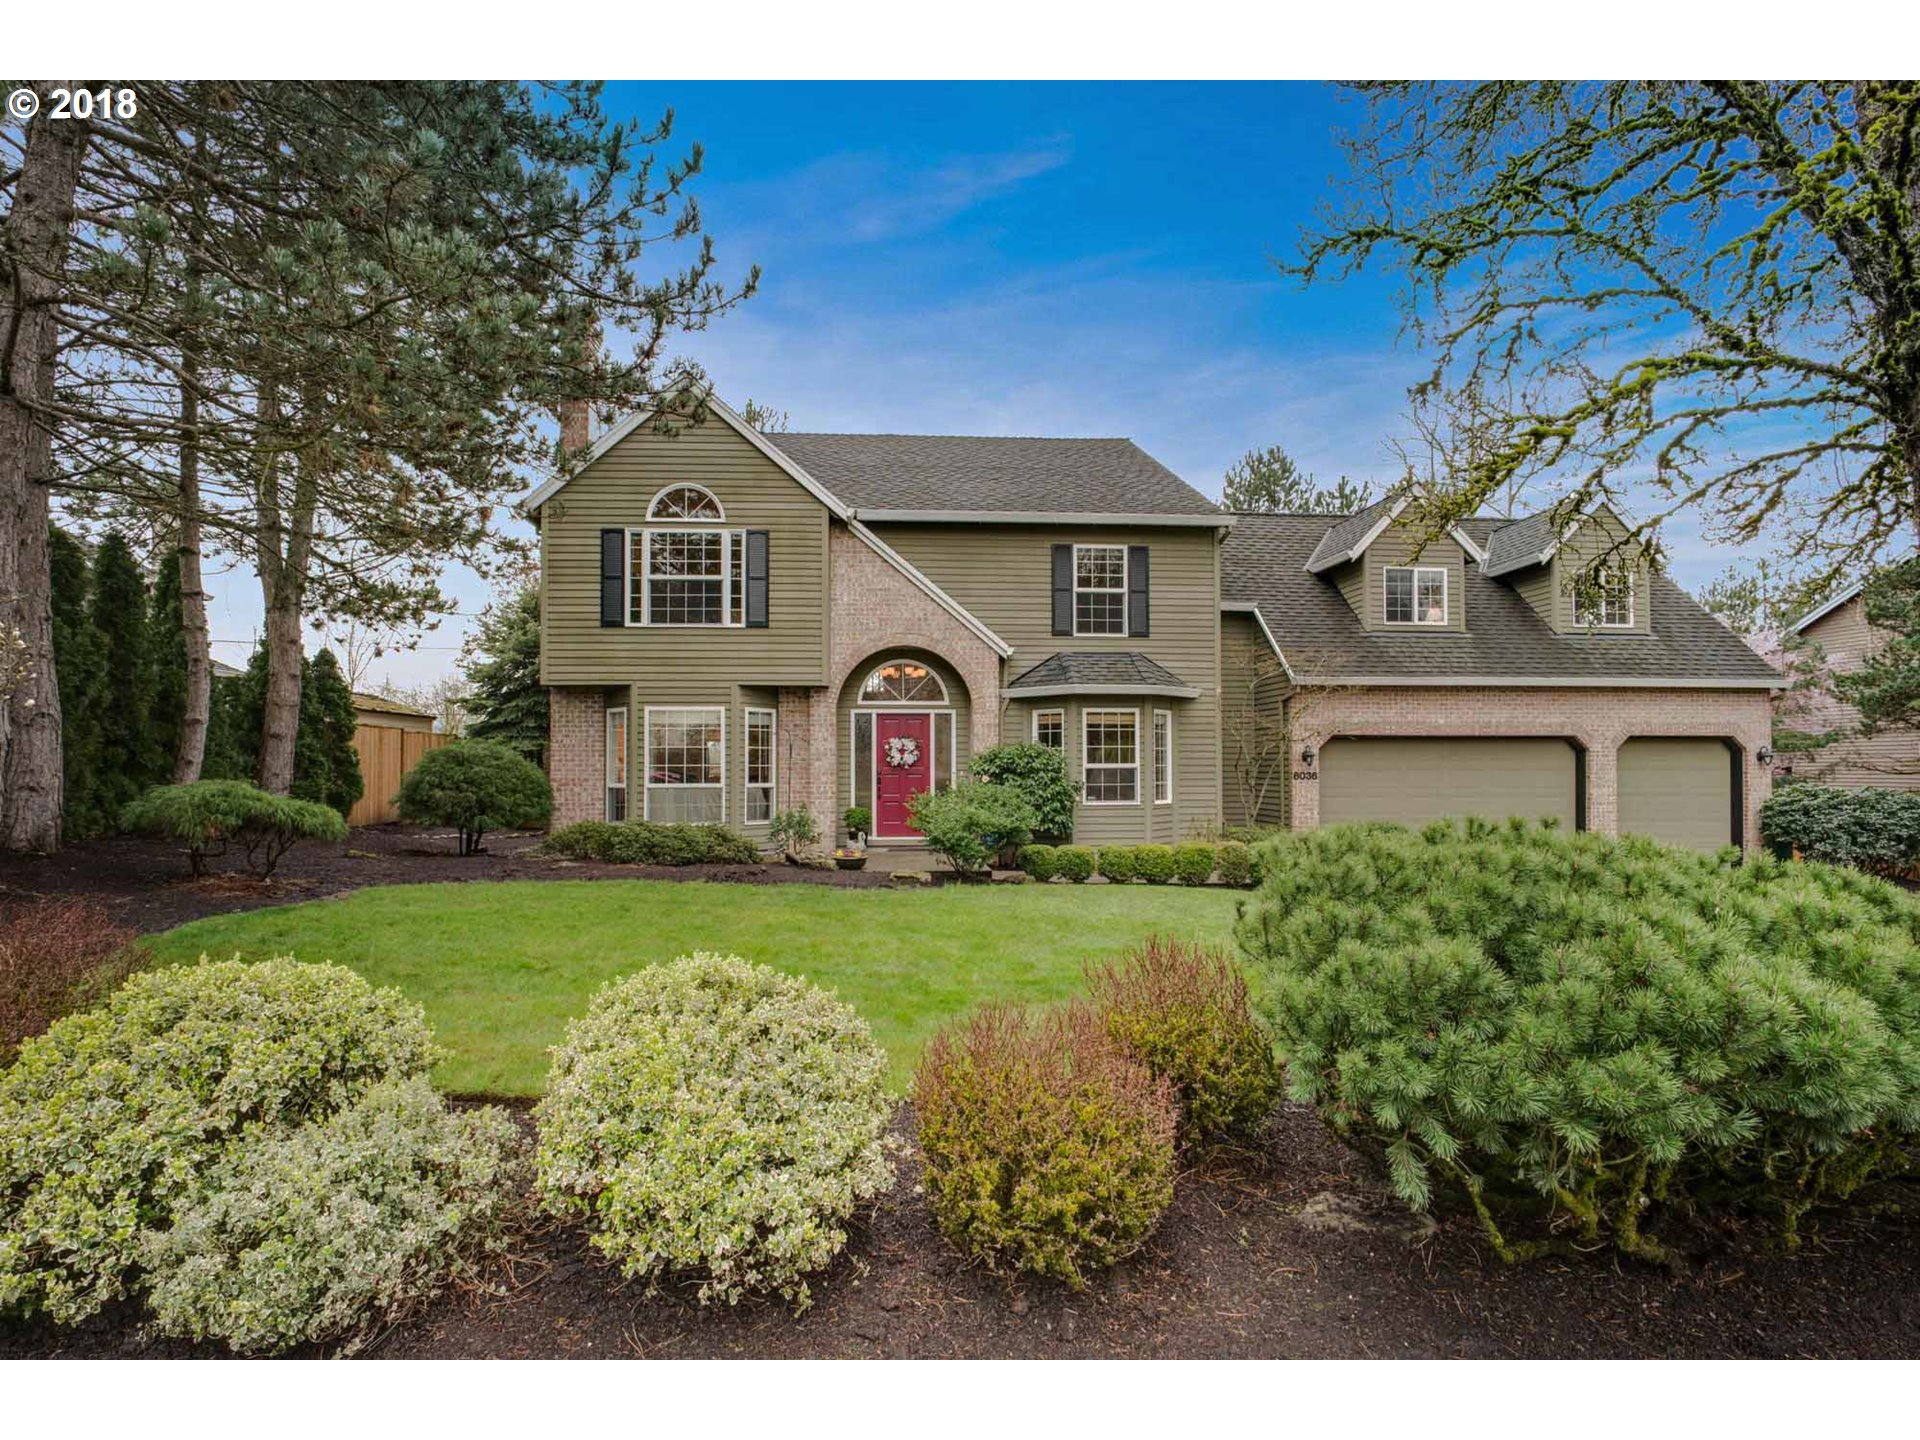 6036 SW KRUSE RIDGE DR Portland Home Listings - Keller Williams Sunset Corridor Portland Real Estate